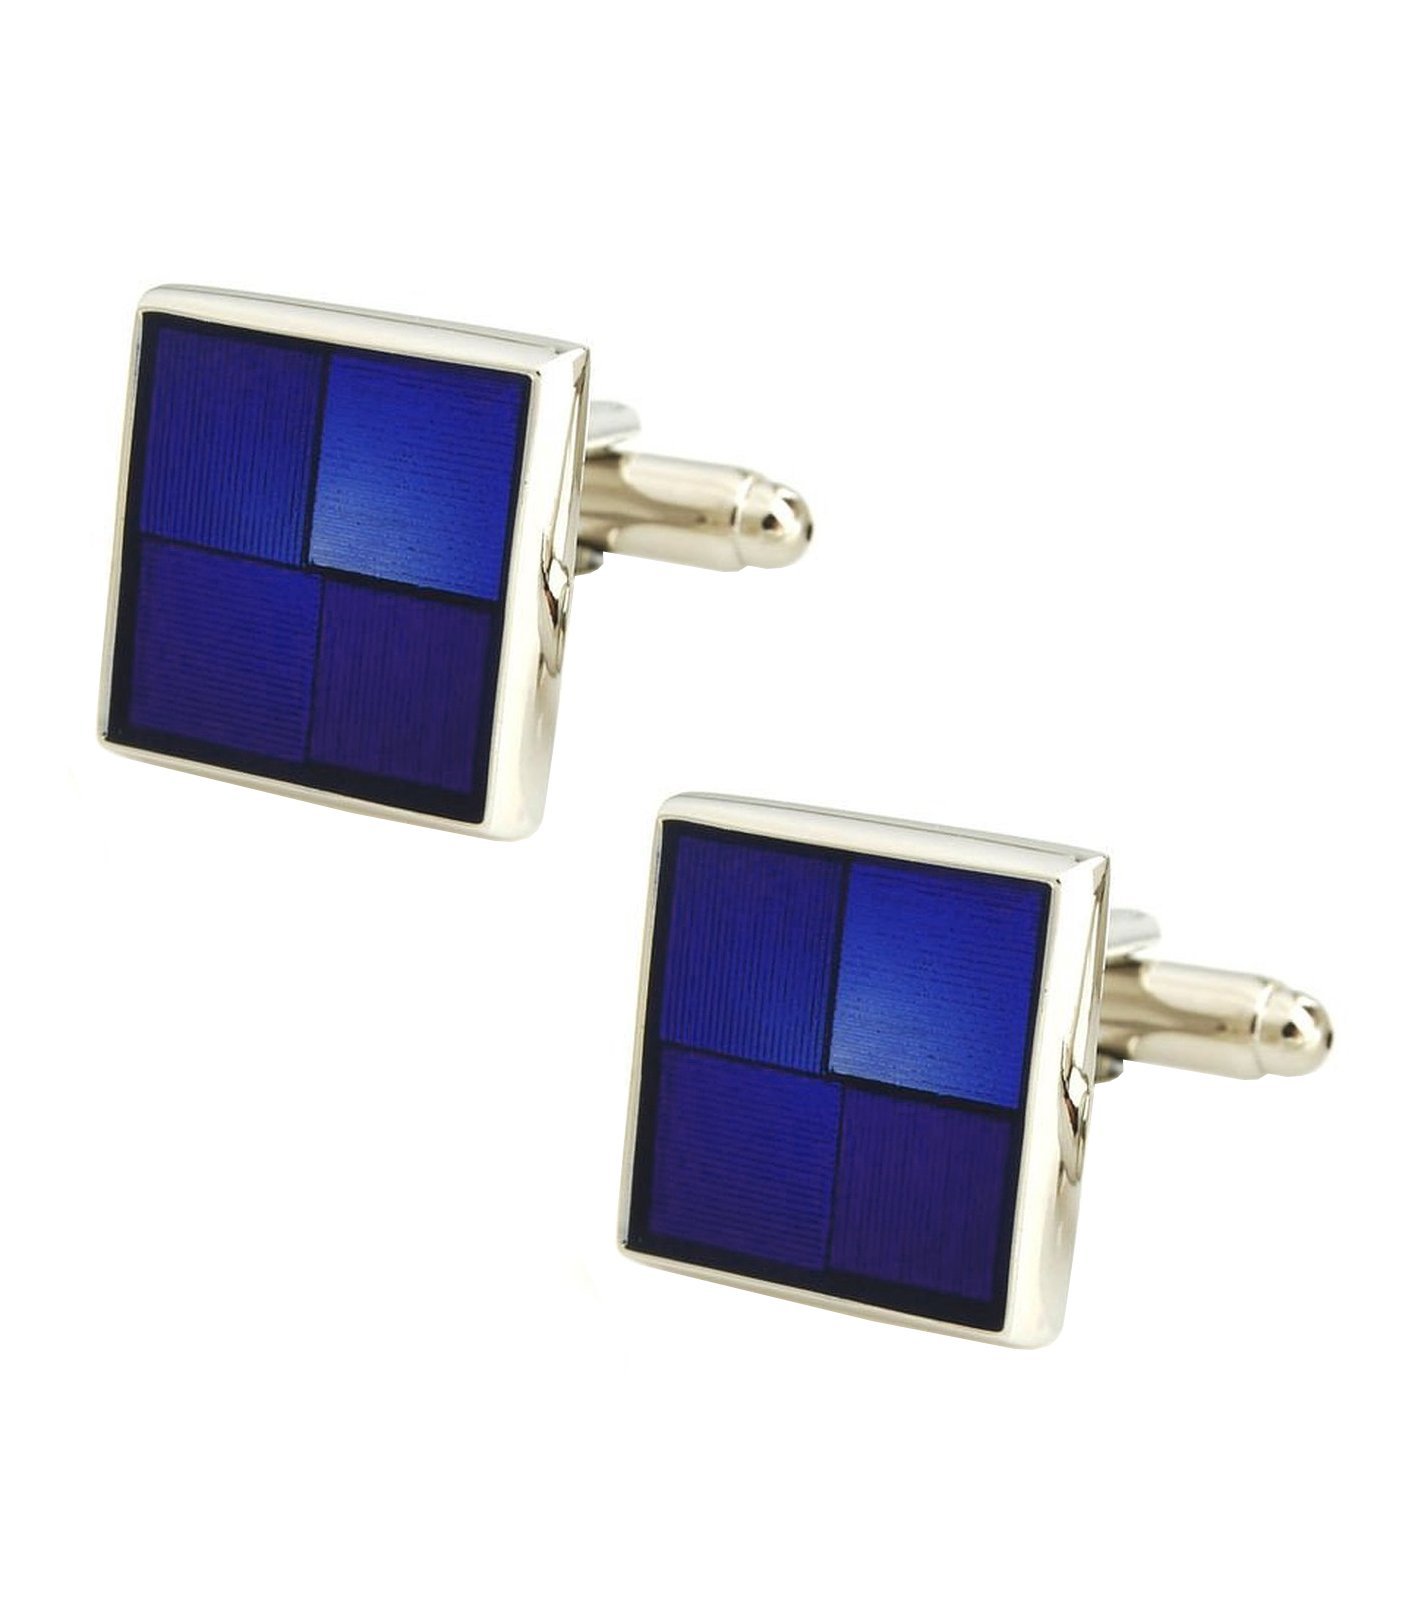 The Jewelbox 3D Square Blue Checks Checkered Enamel Brass Formal Shirt Blazer Suit Cufflinks Pair Men Gift Box